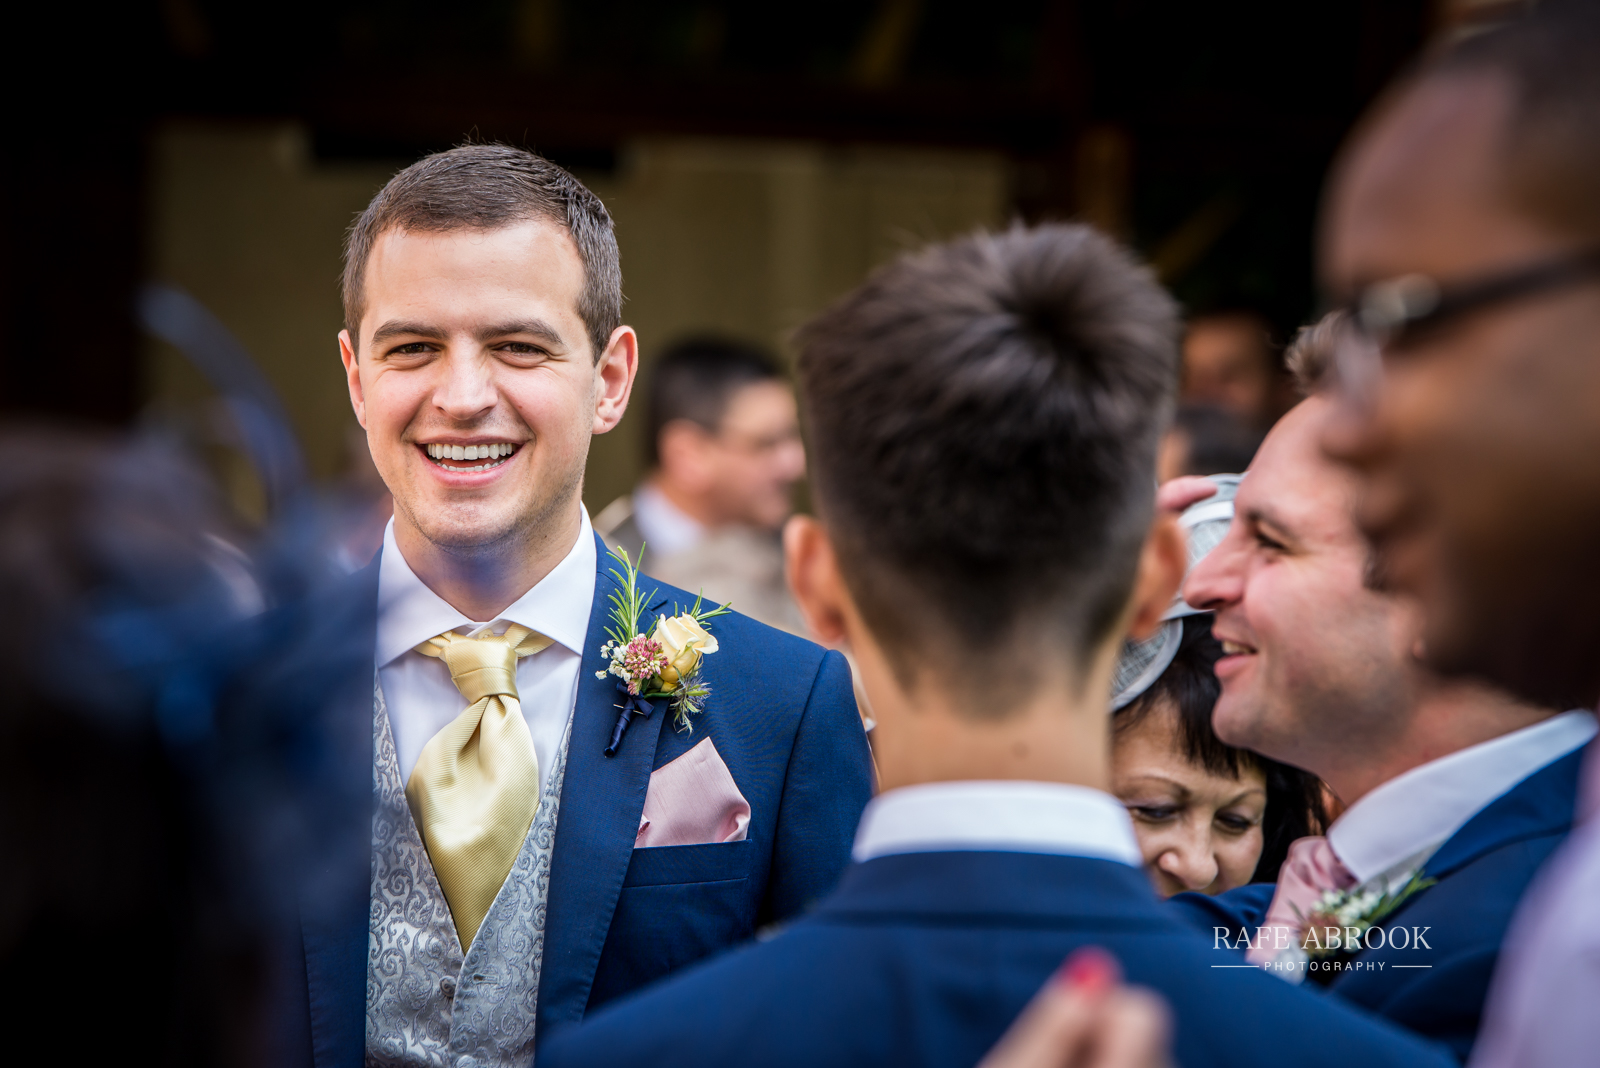 bassmead manor barns st neots cambridgeshire hertfordshire wedding photographer-1080.jpg